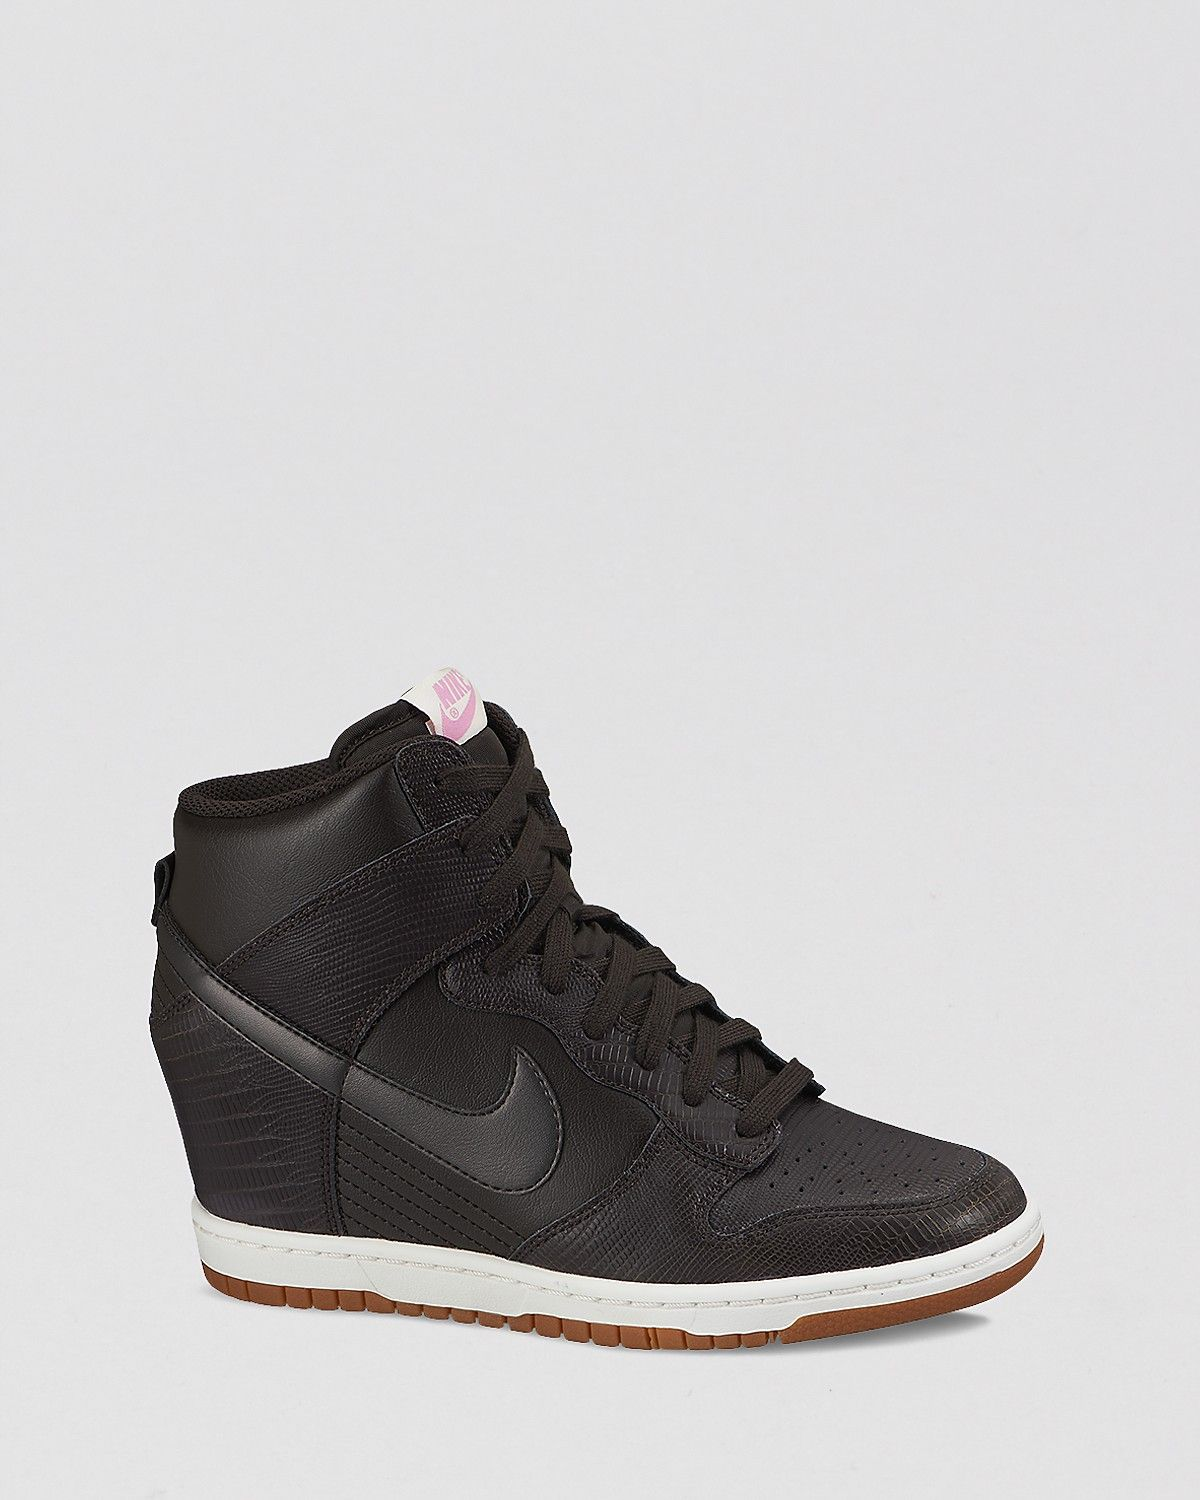 separation shoes 417b9 77447 nike skor kilklack